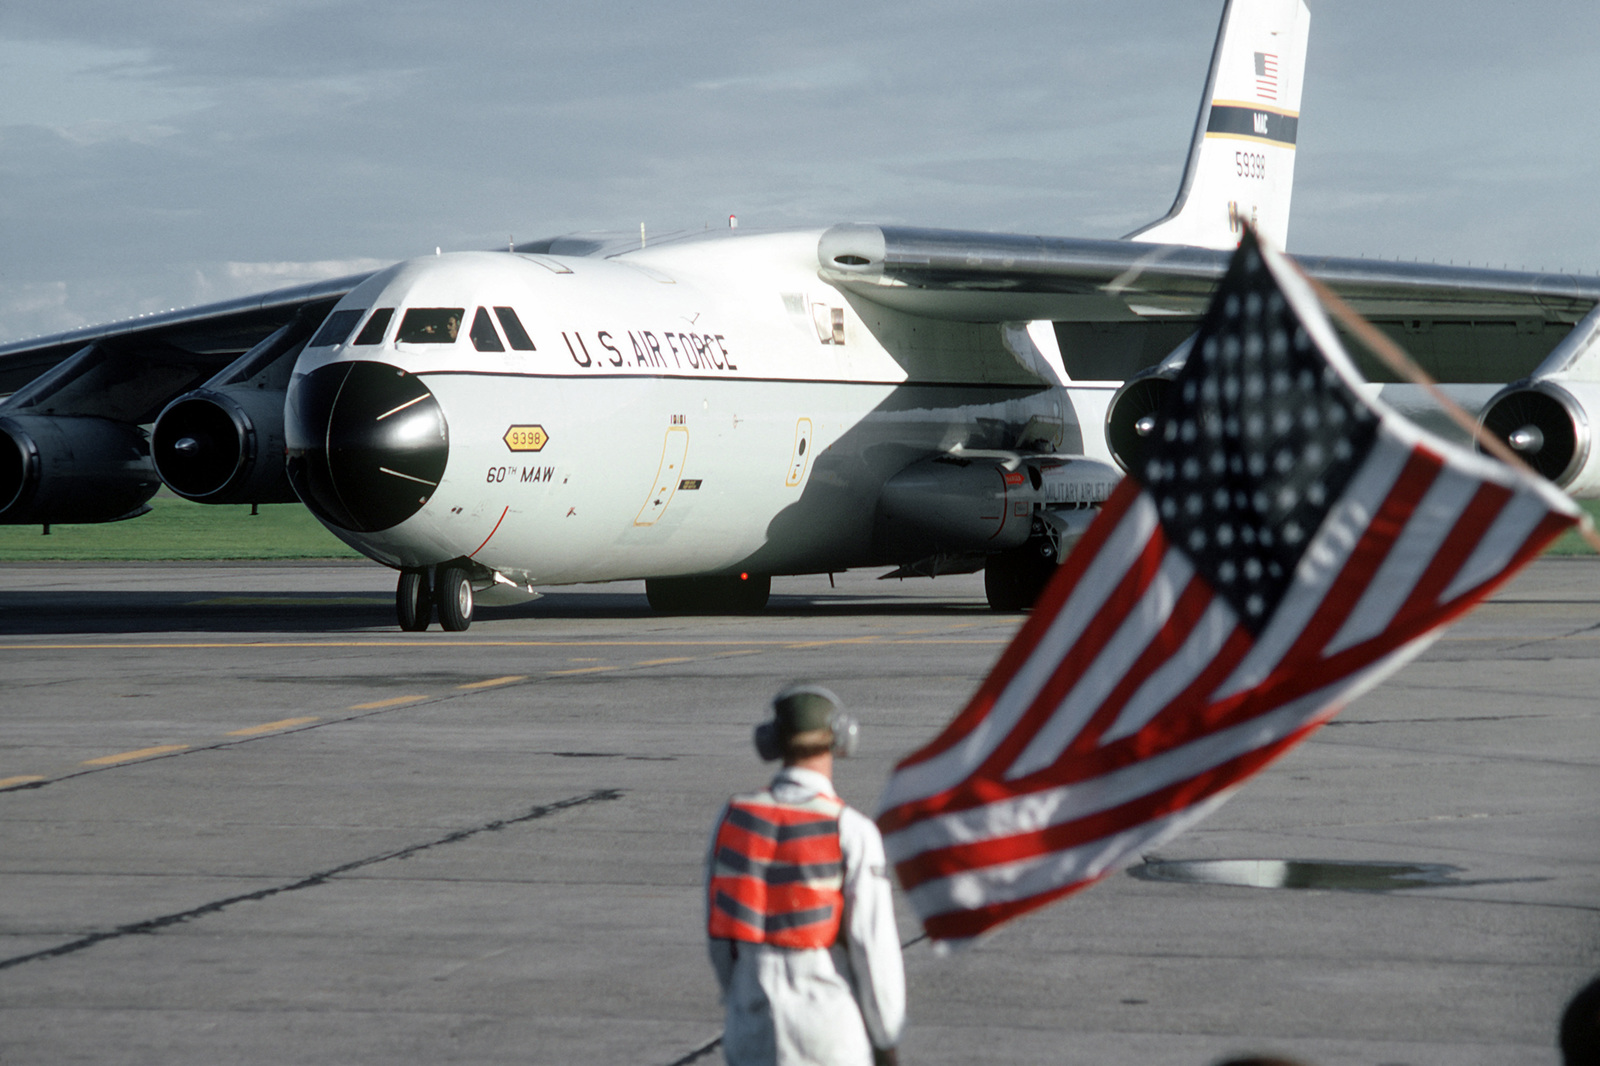 The C-141 Starlifter aircraft carrying recently released from a prisoner of war arrives at Travis Air Base